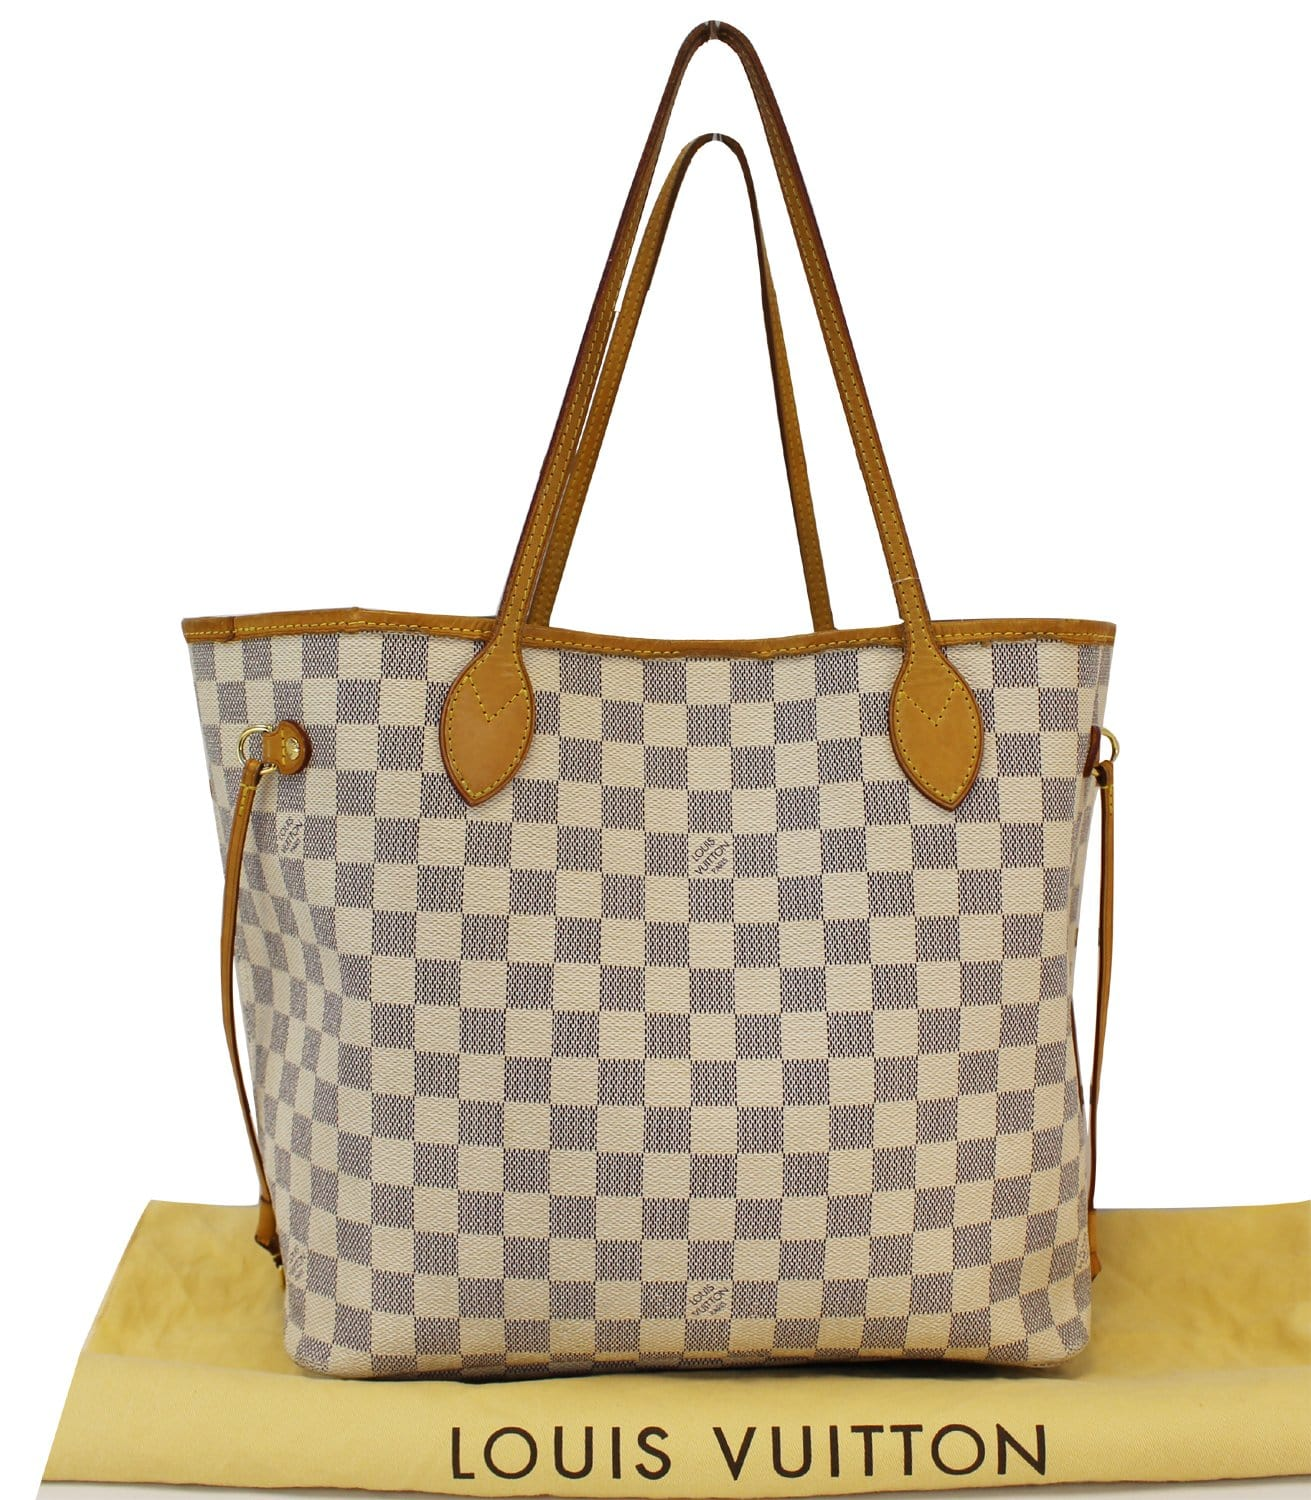 5639062877a LOUIS VUITTON Damier Azur White Neverfull MM Tote Bag